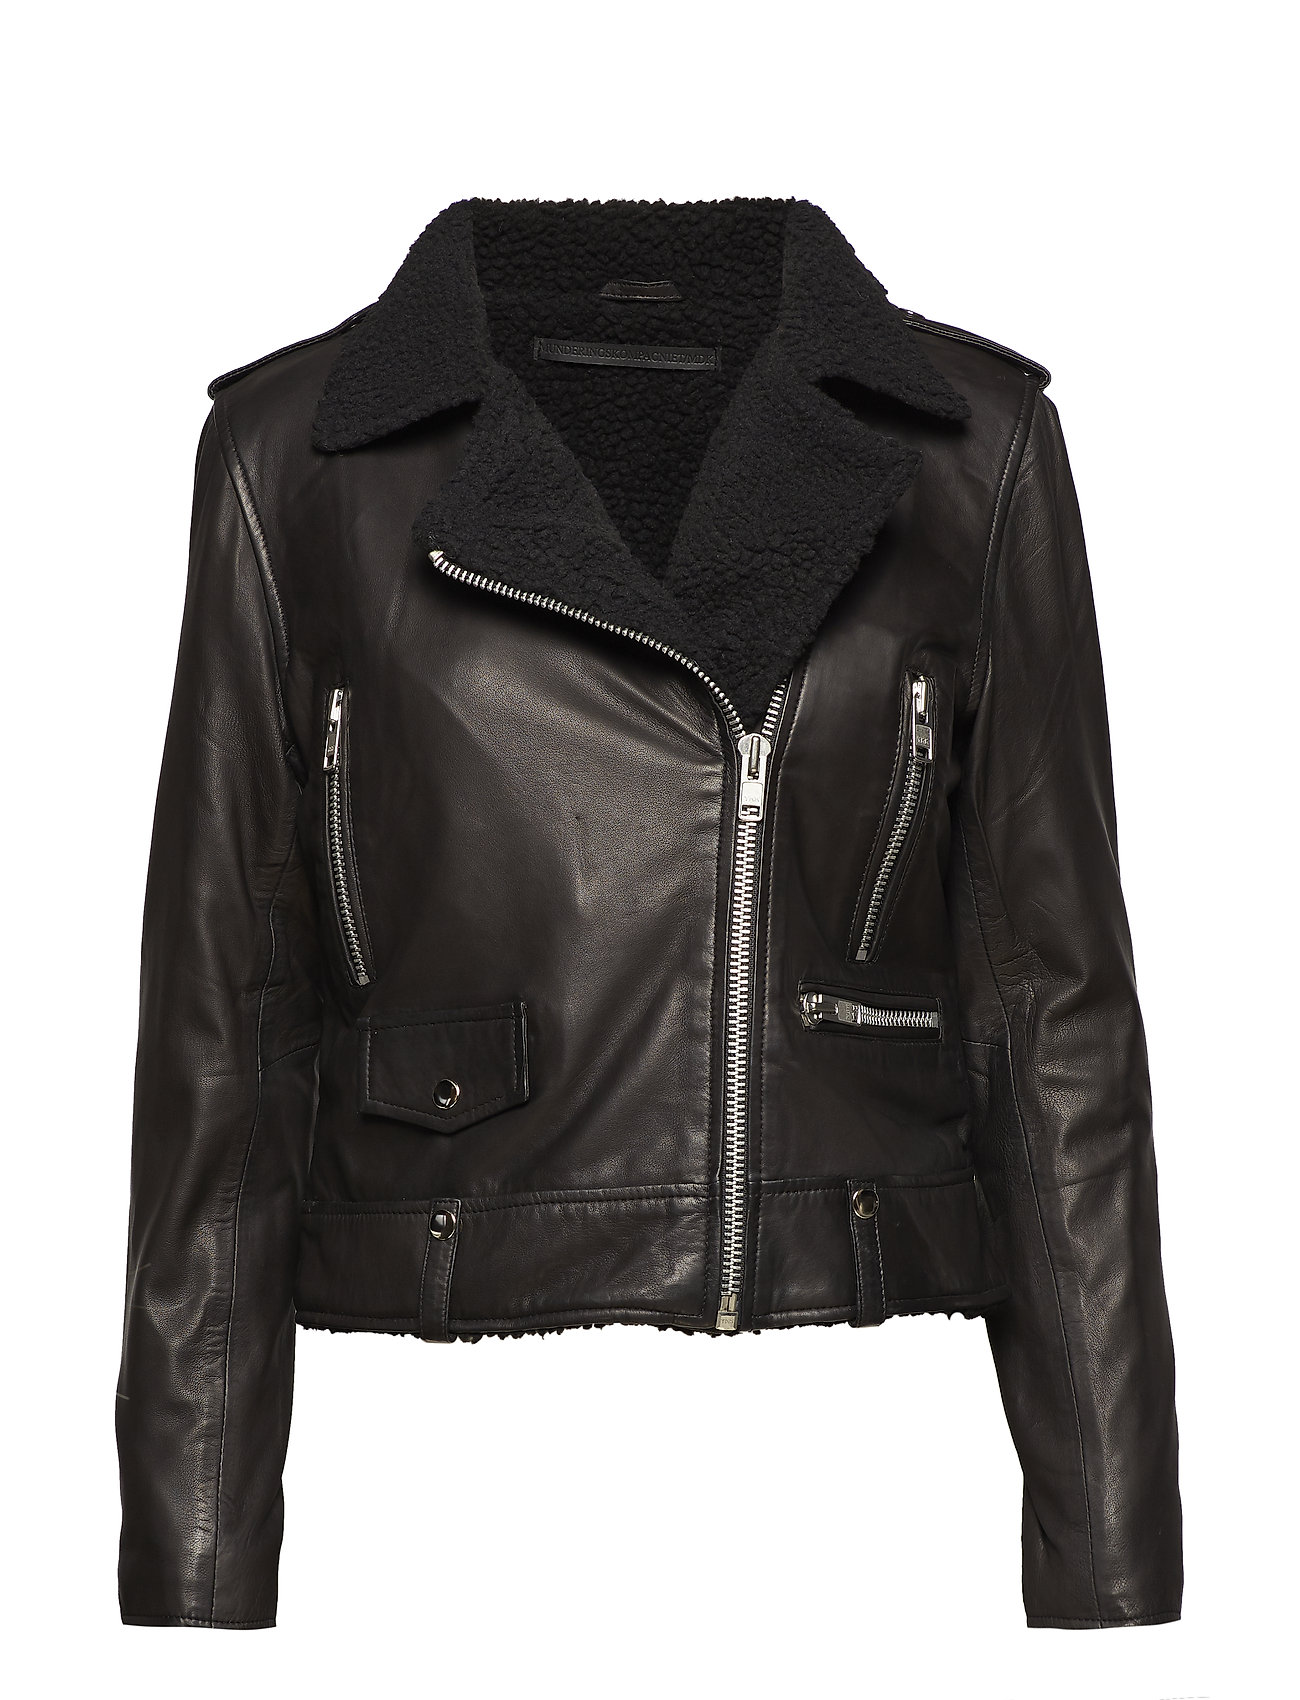 MDK / Munderingskompagniet Seattle fur leather jacket (black)